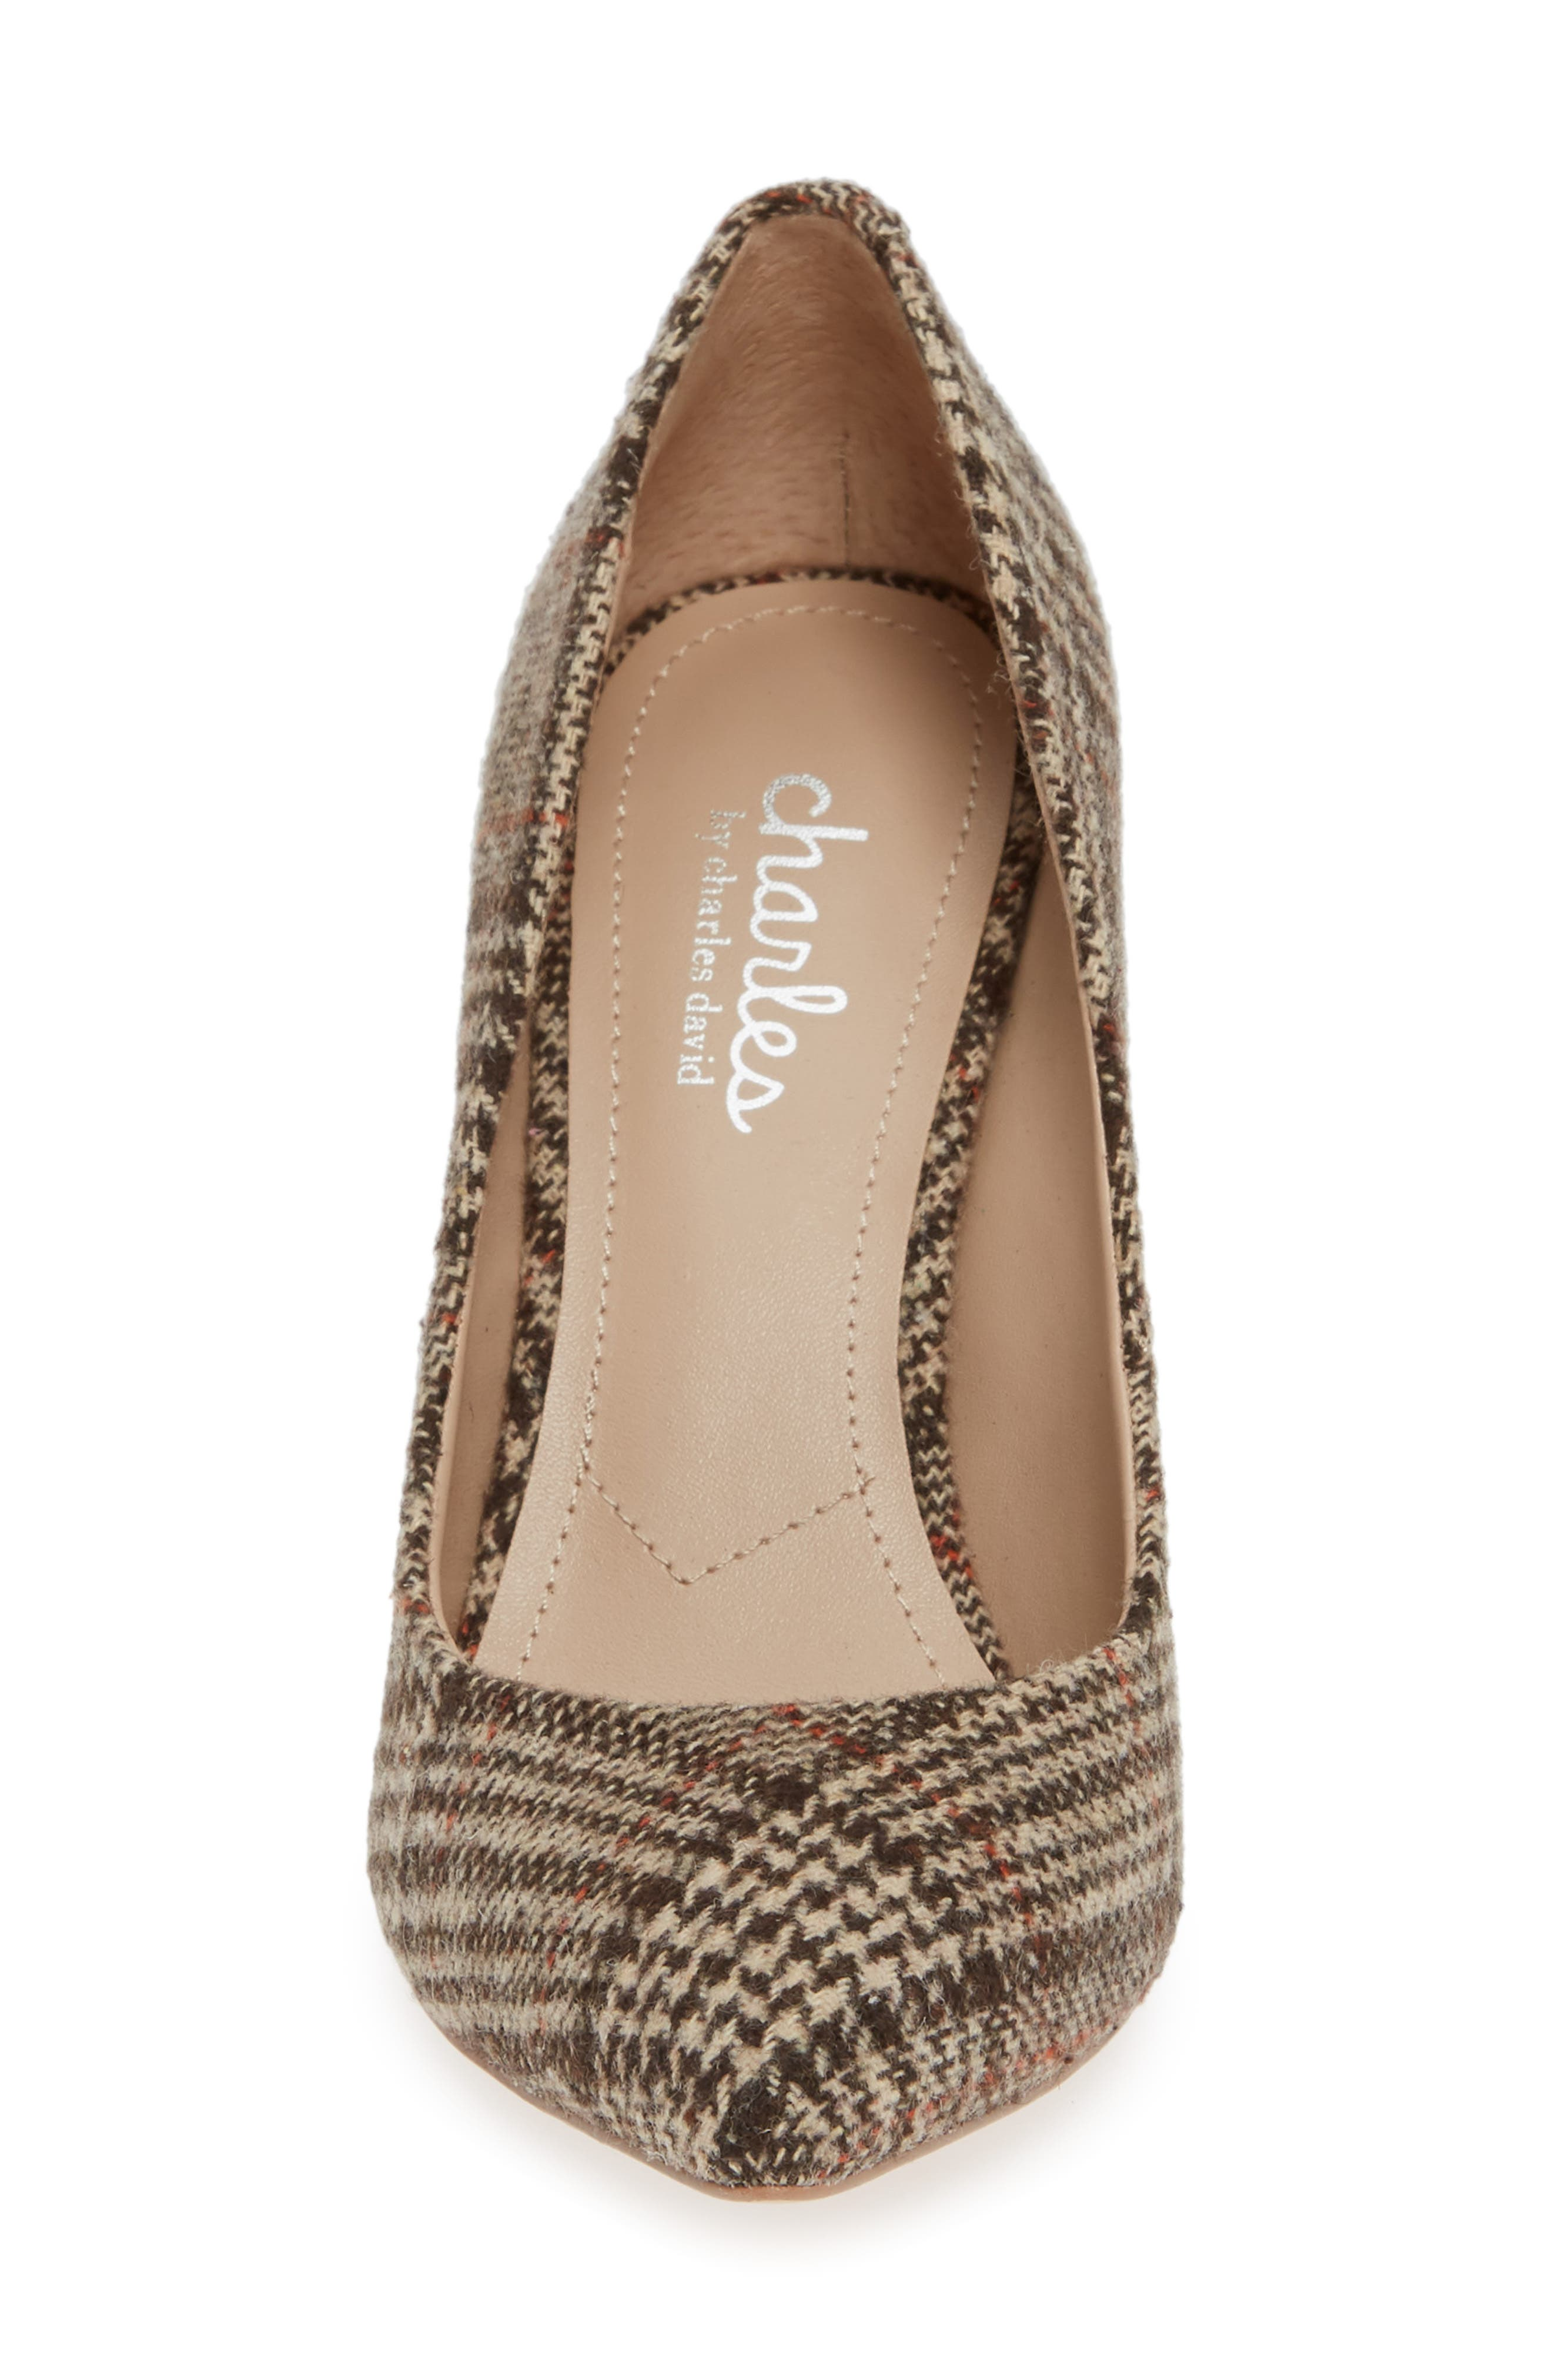 Maxx Pointy Toe Pump,                             Alternate thumbnail 4, color,                             BROWN PLAID FABRIC